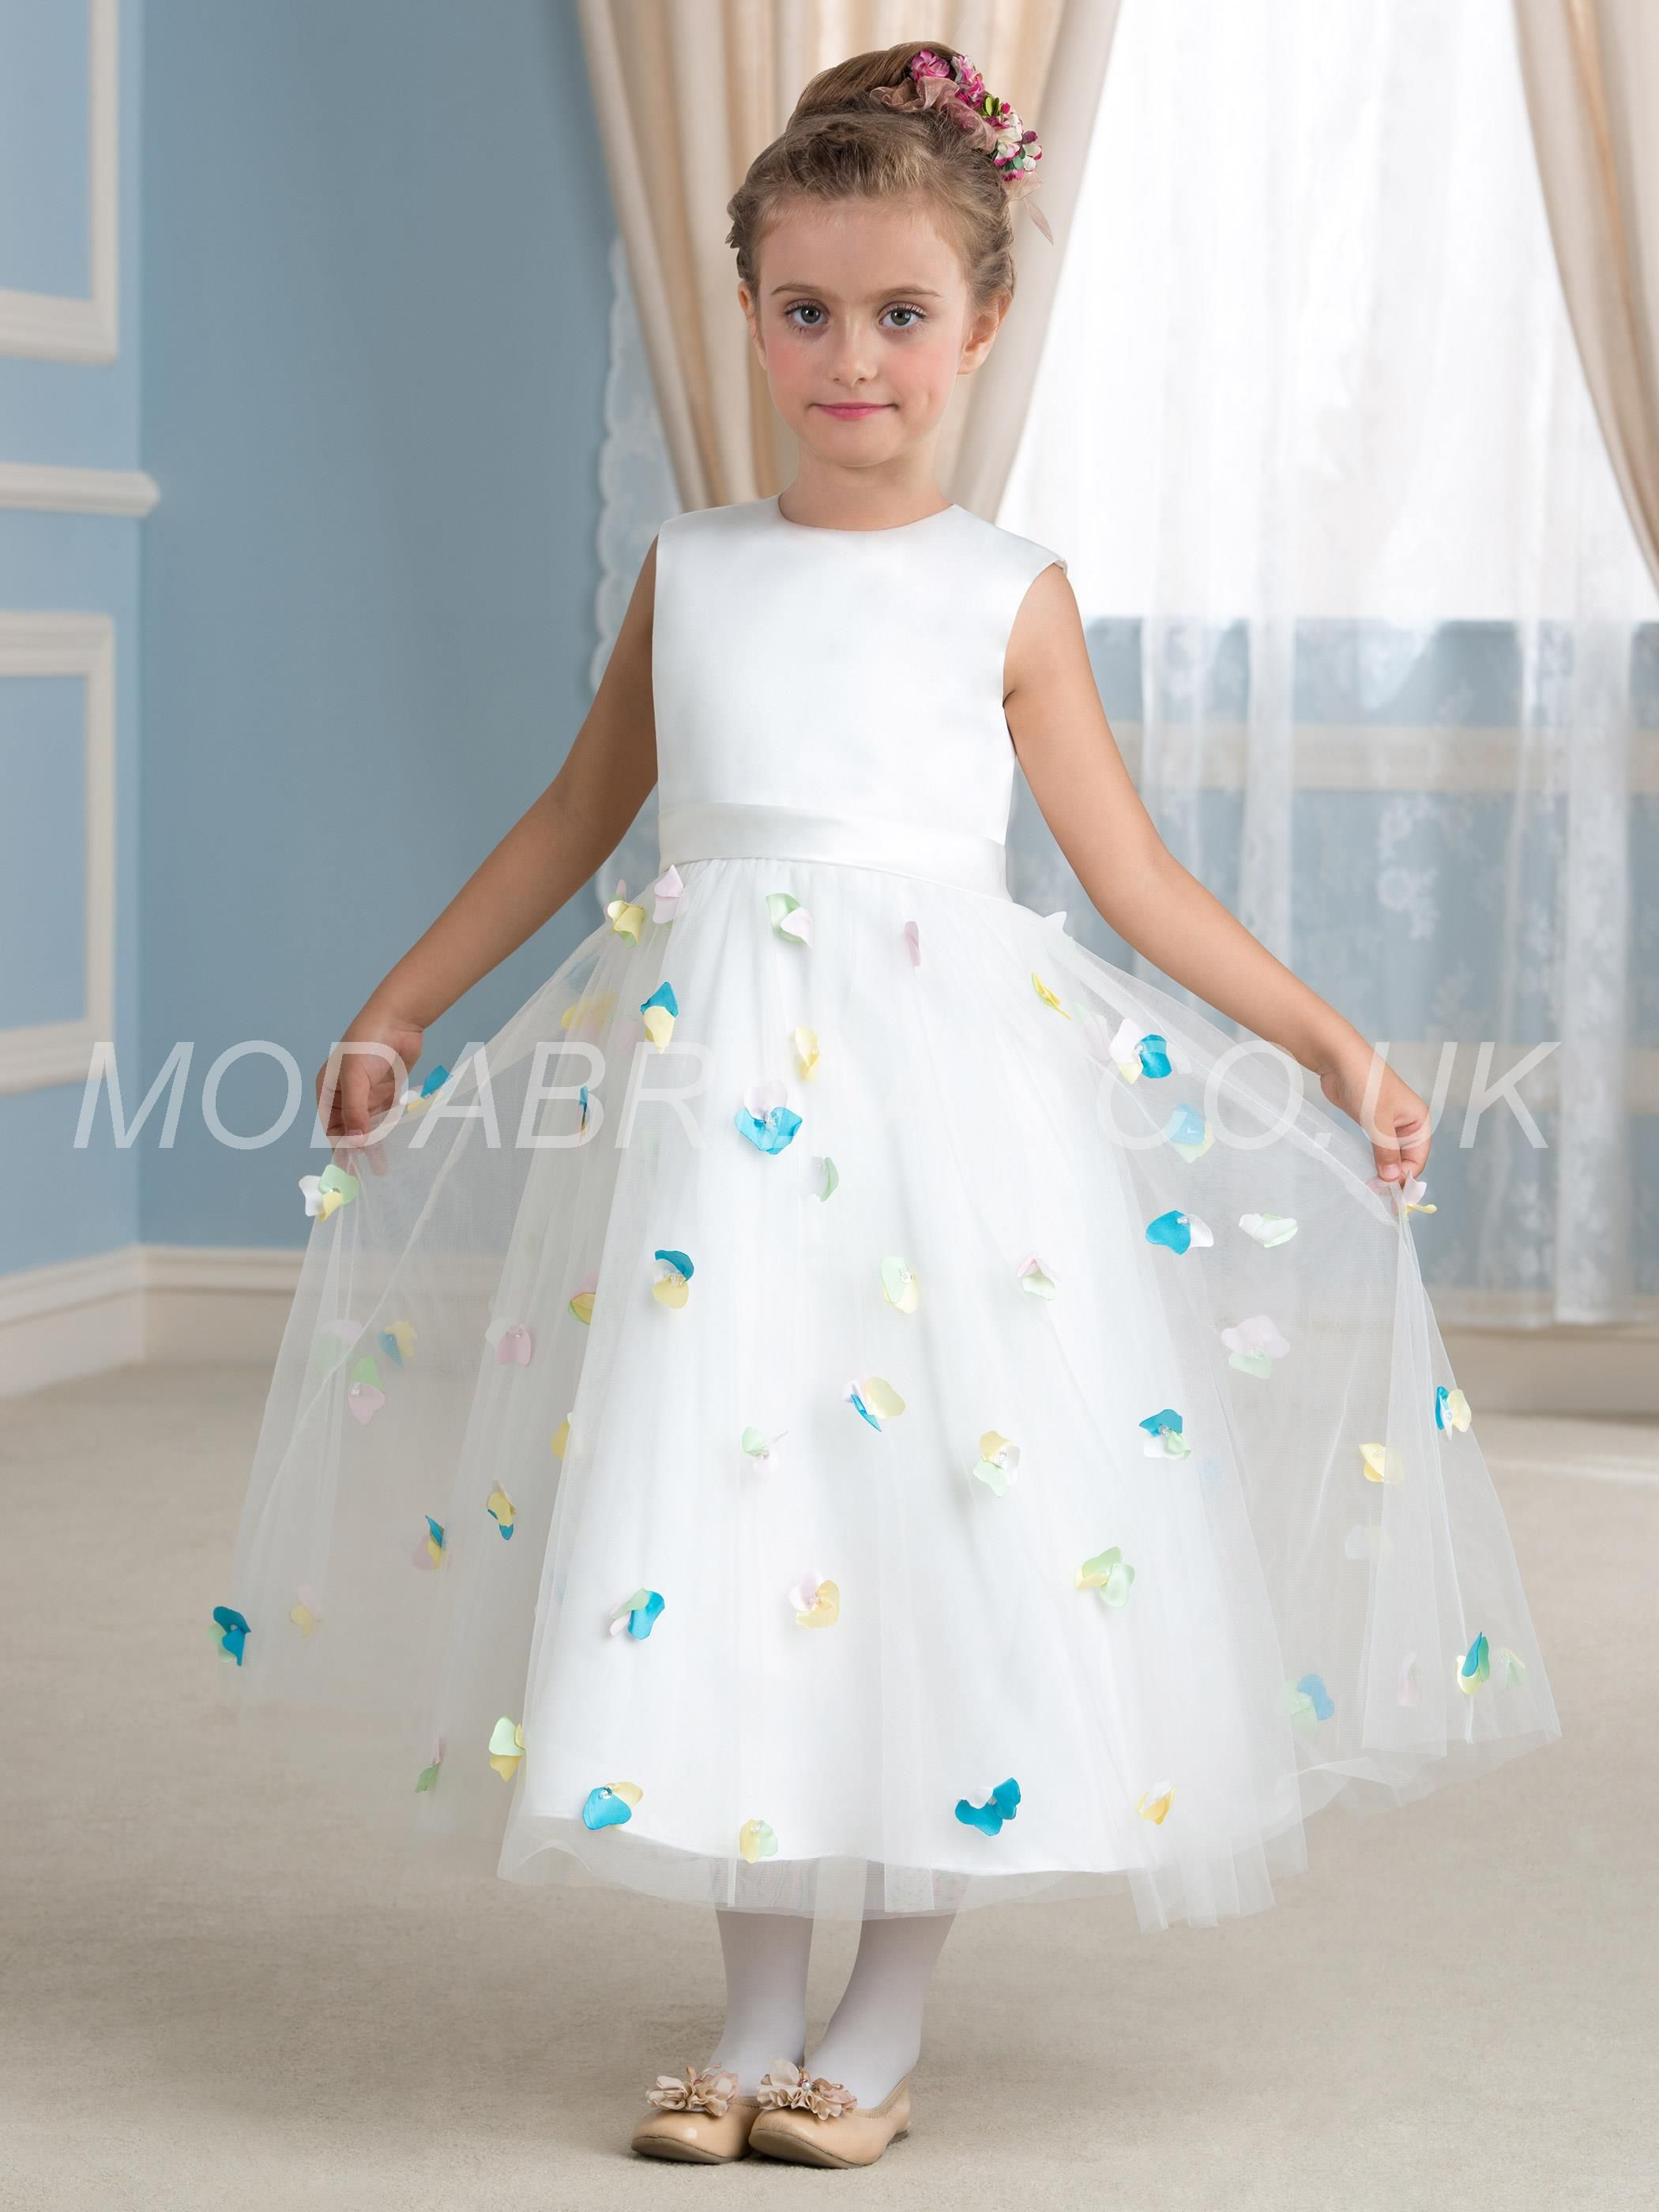 Modabridal supplies vogue scoop sleeveless natural zipper up modabridal supplies vogue scoop sleeveless natural zipper up tea length summer fall flowers flower girl dress flower girl dresses izmirmasajfo